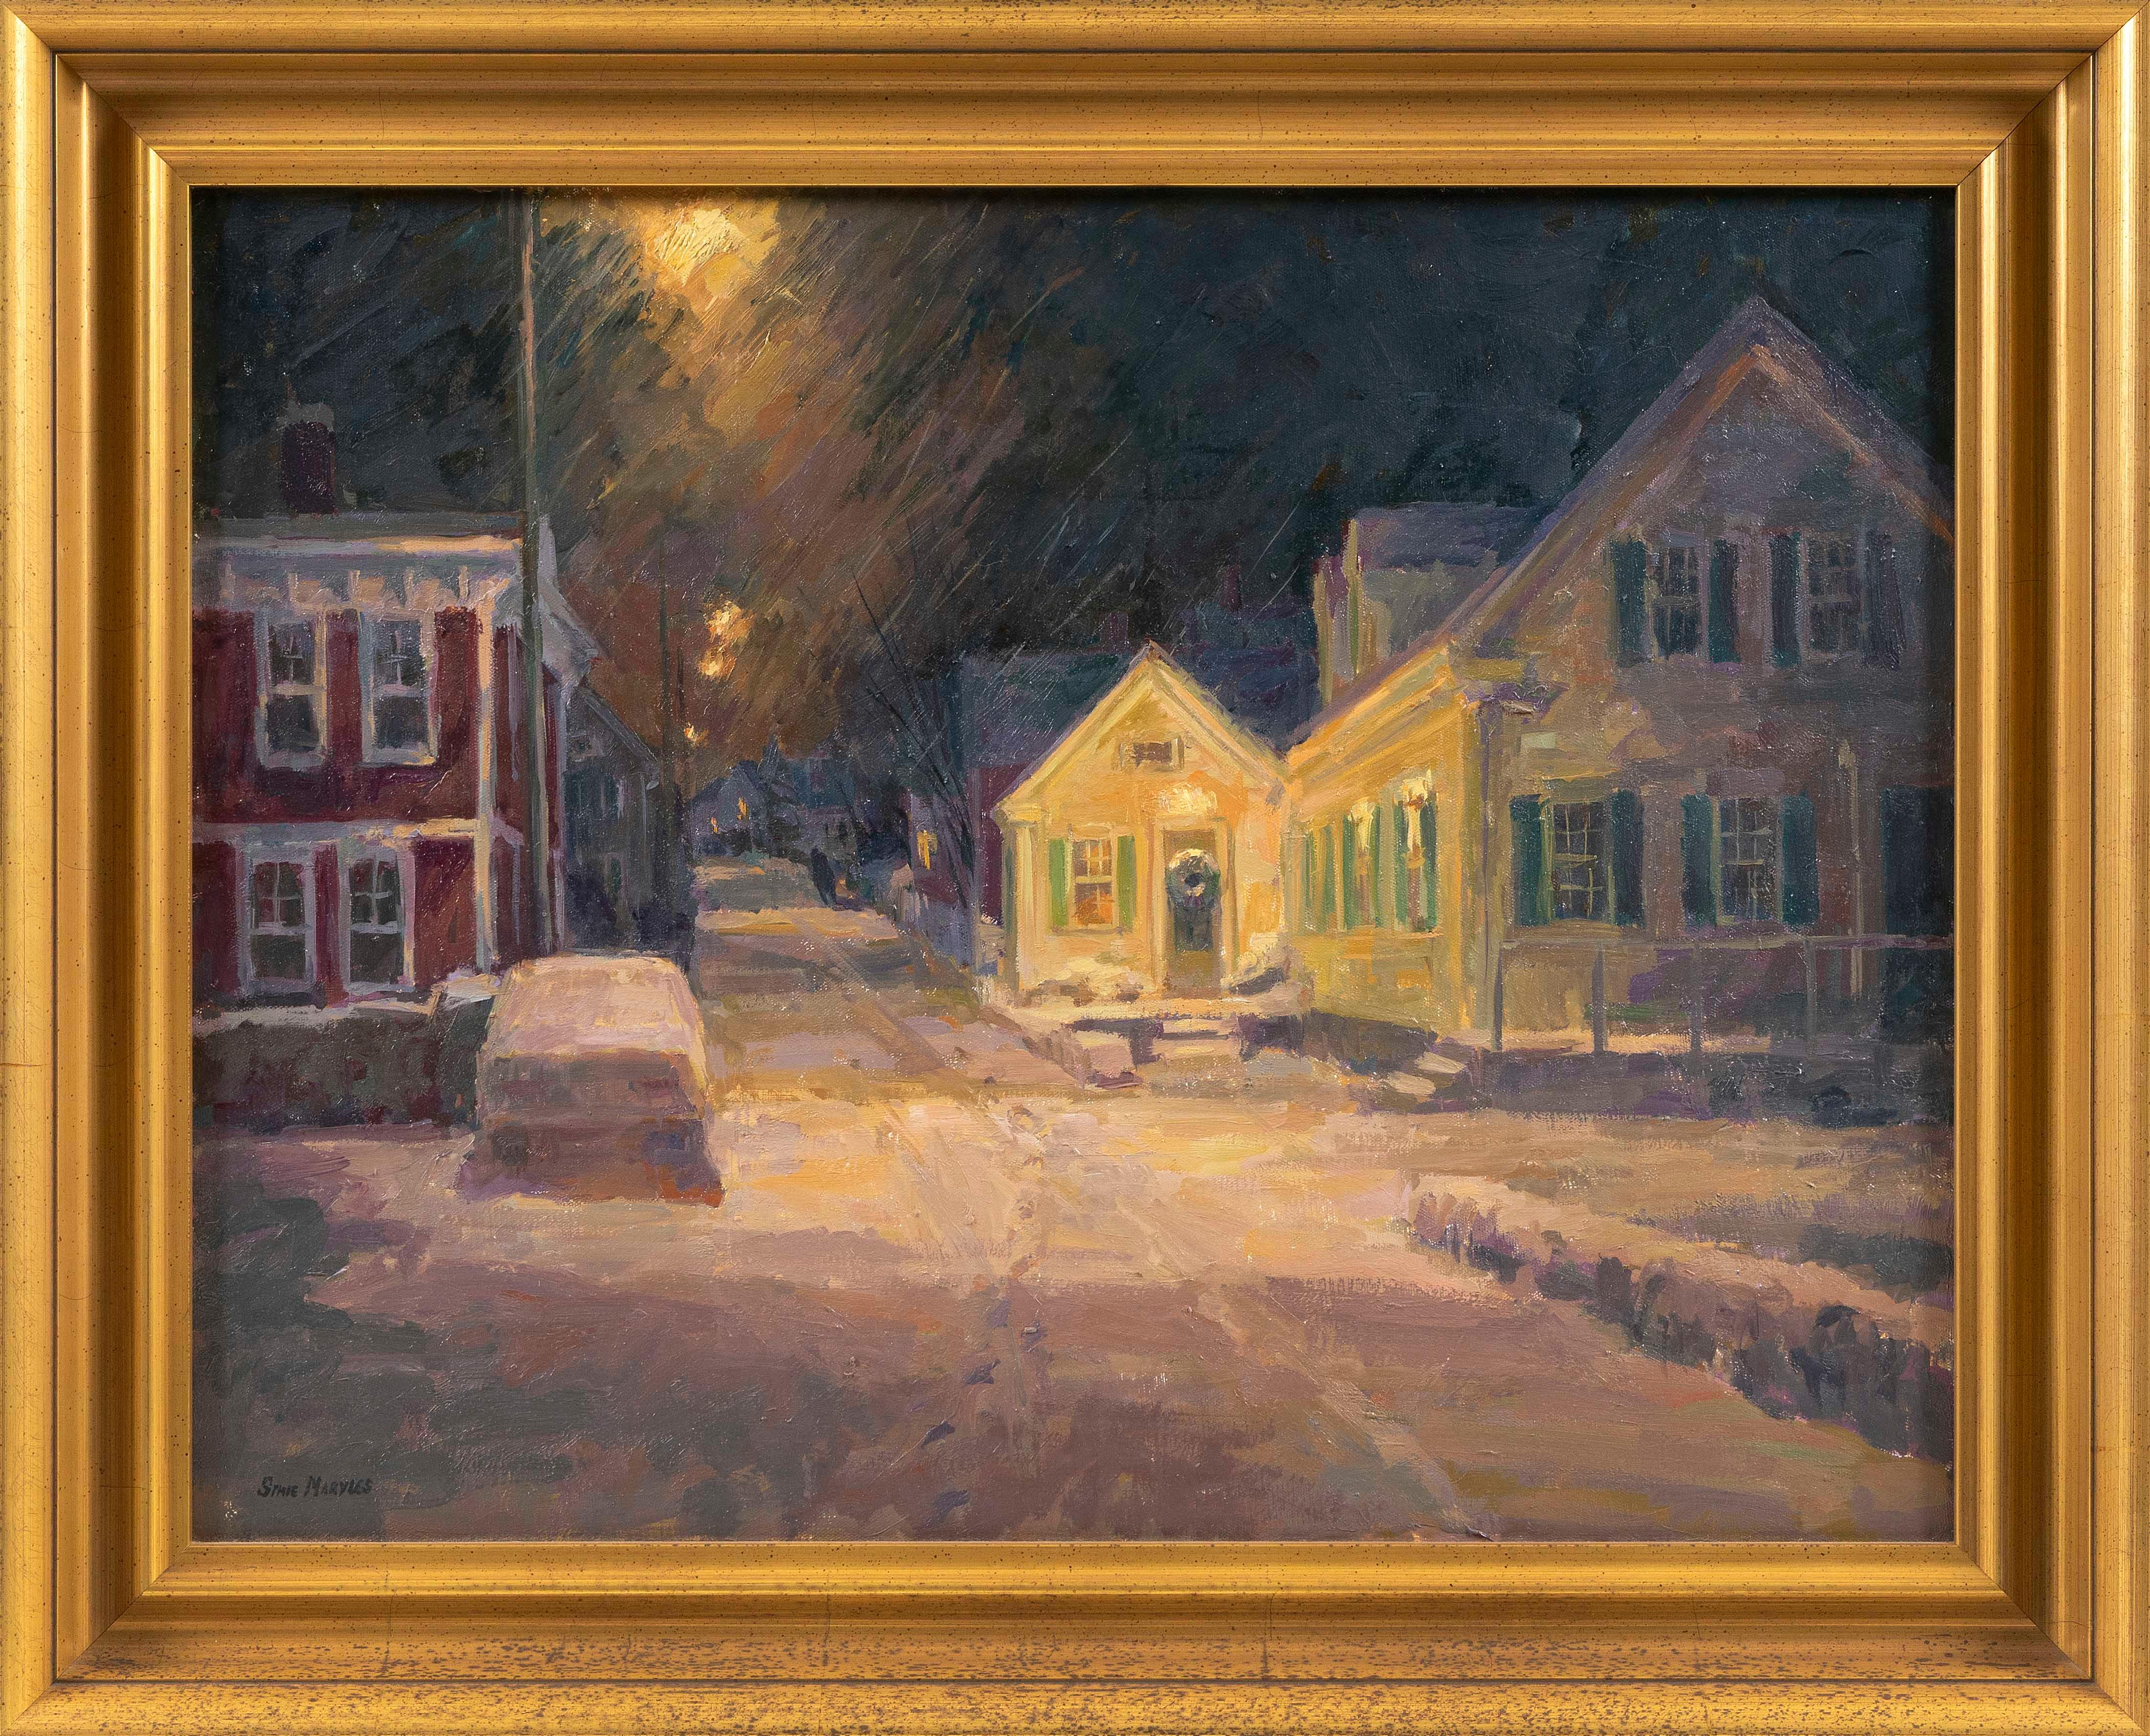 """SIMIE MARYLES (America, Contemporary), """"Snow-Covered Night""""., Oil on canvas, 20"""" x 26"""". Framed 25"""" x 31""""."""